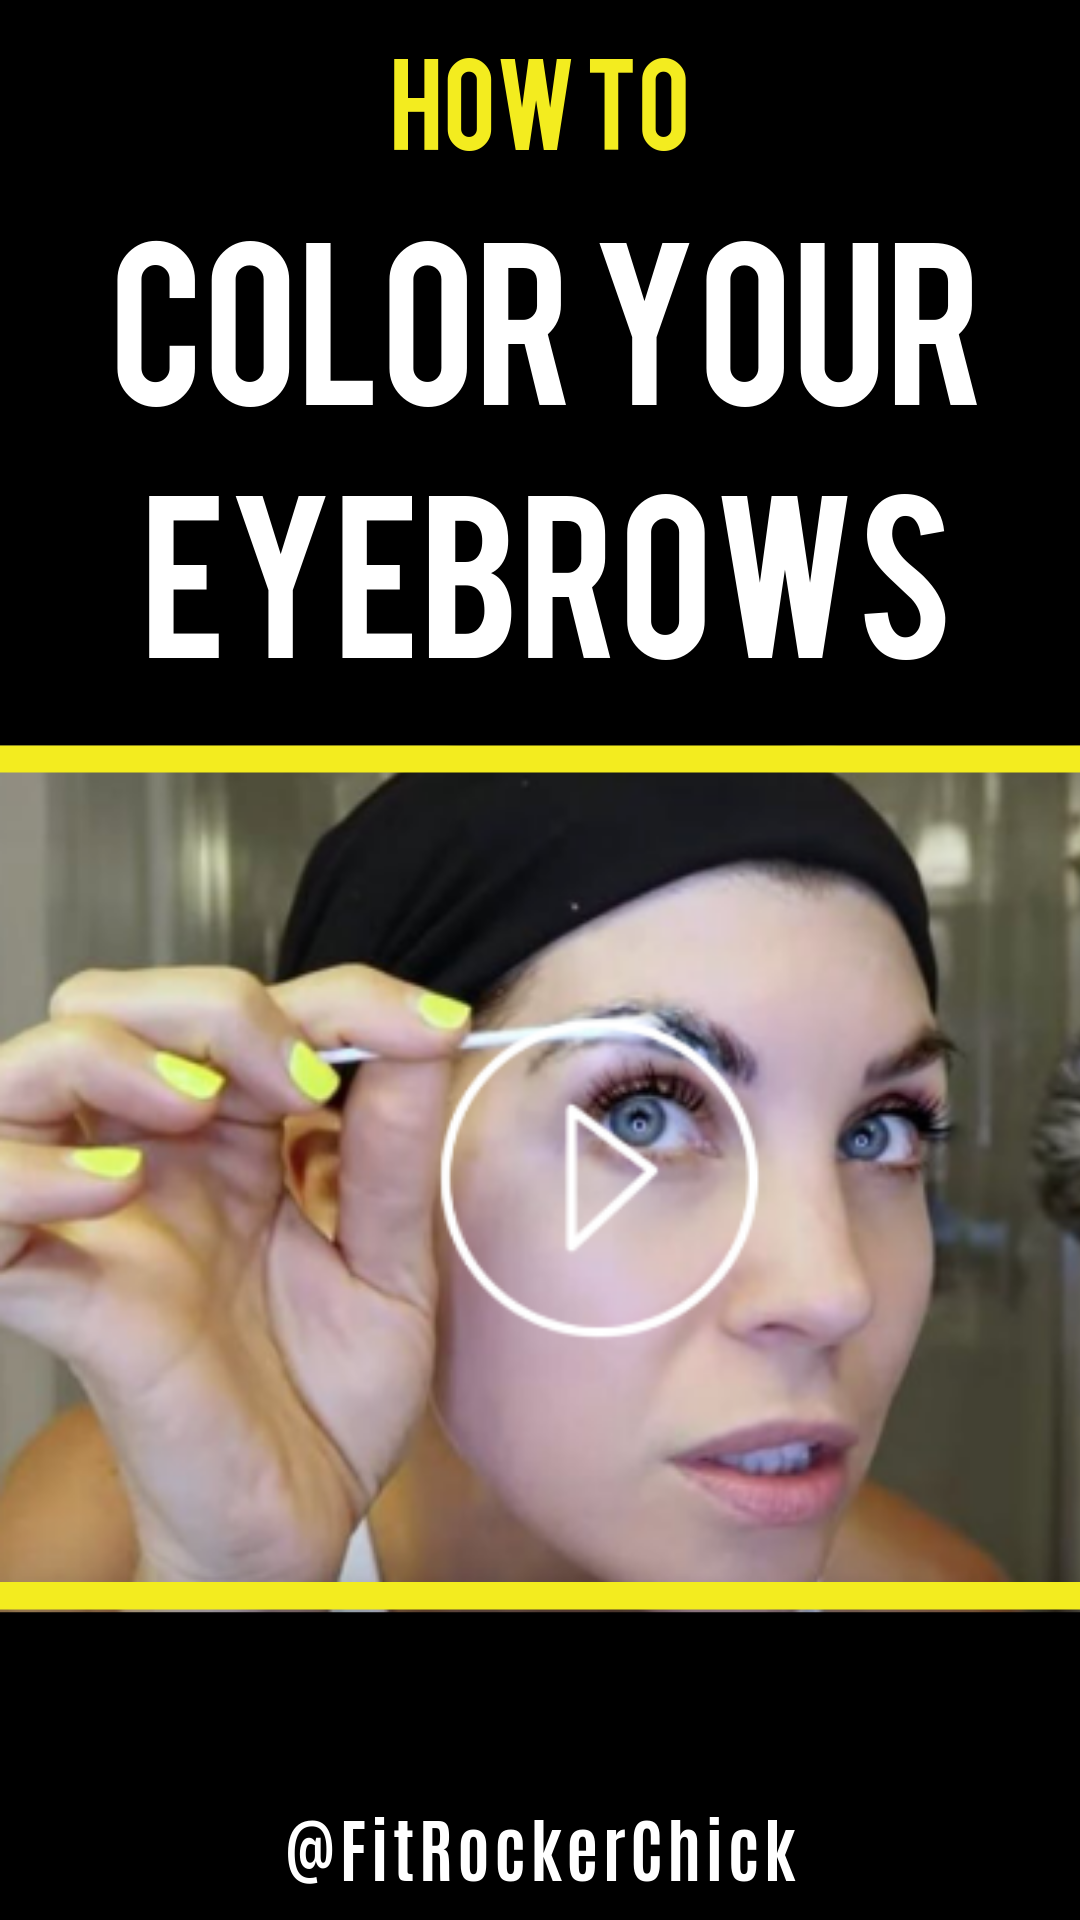 How to tint and color your eyebrows at home! Step by step